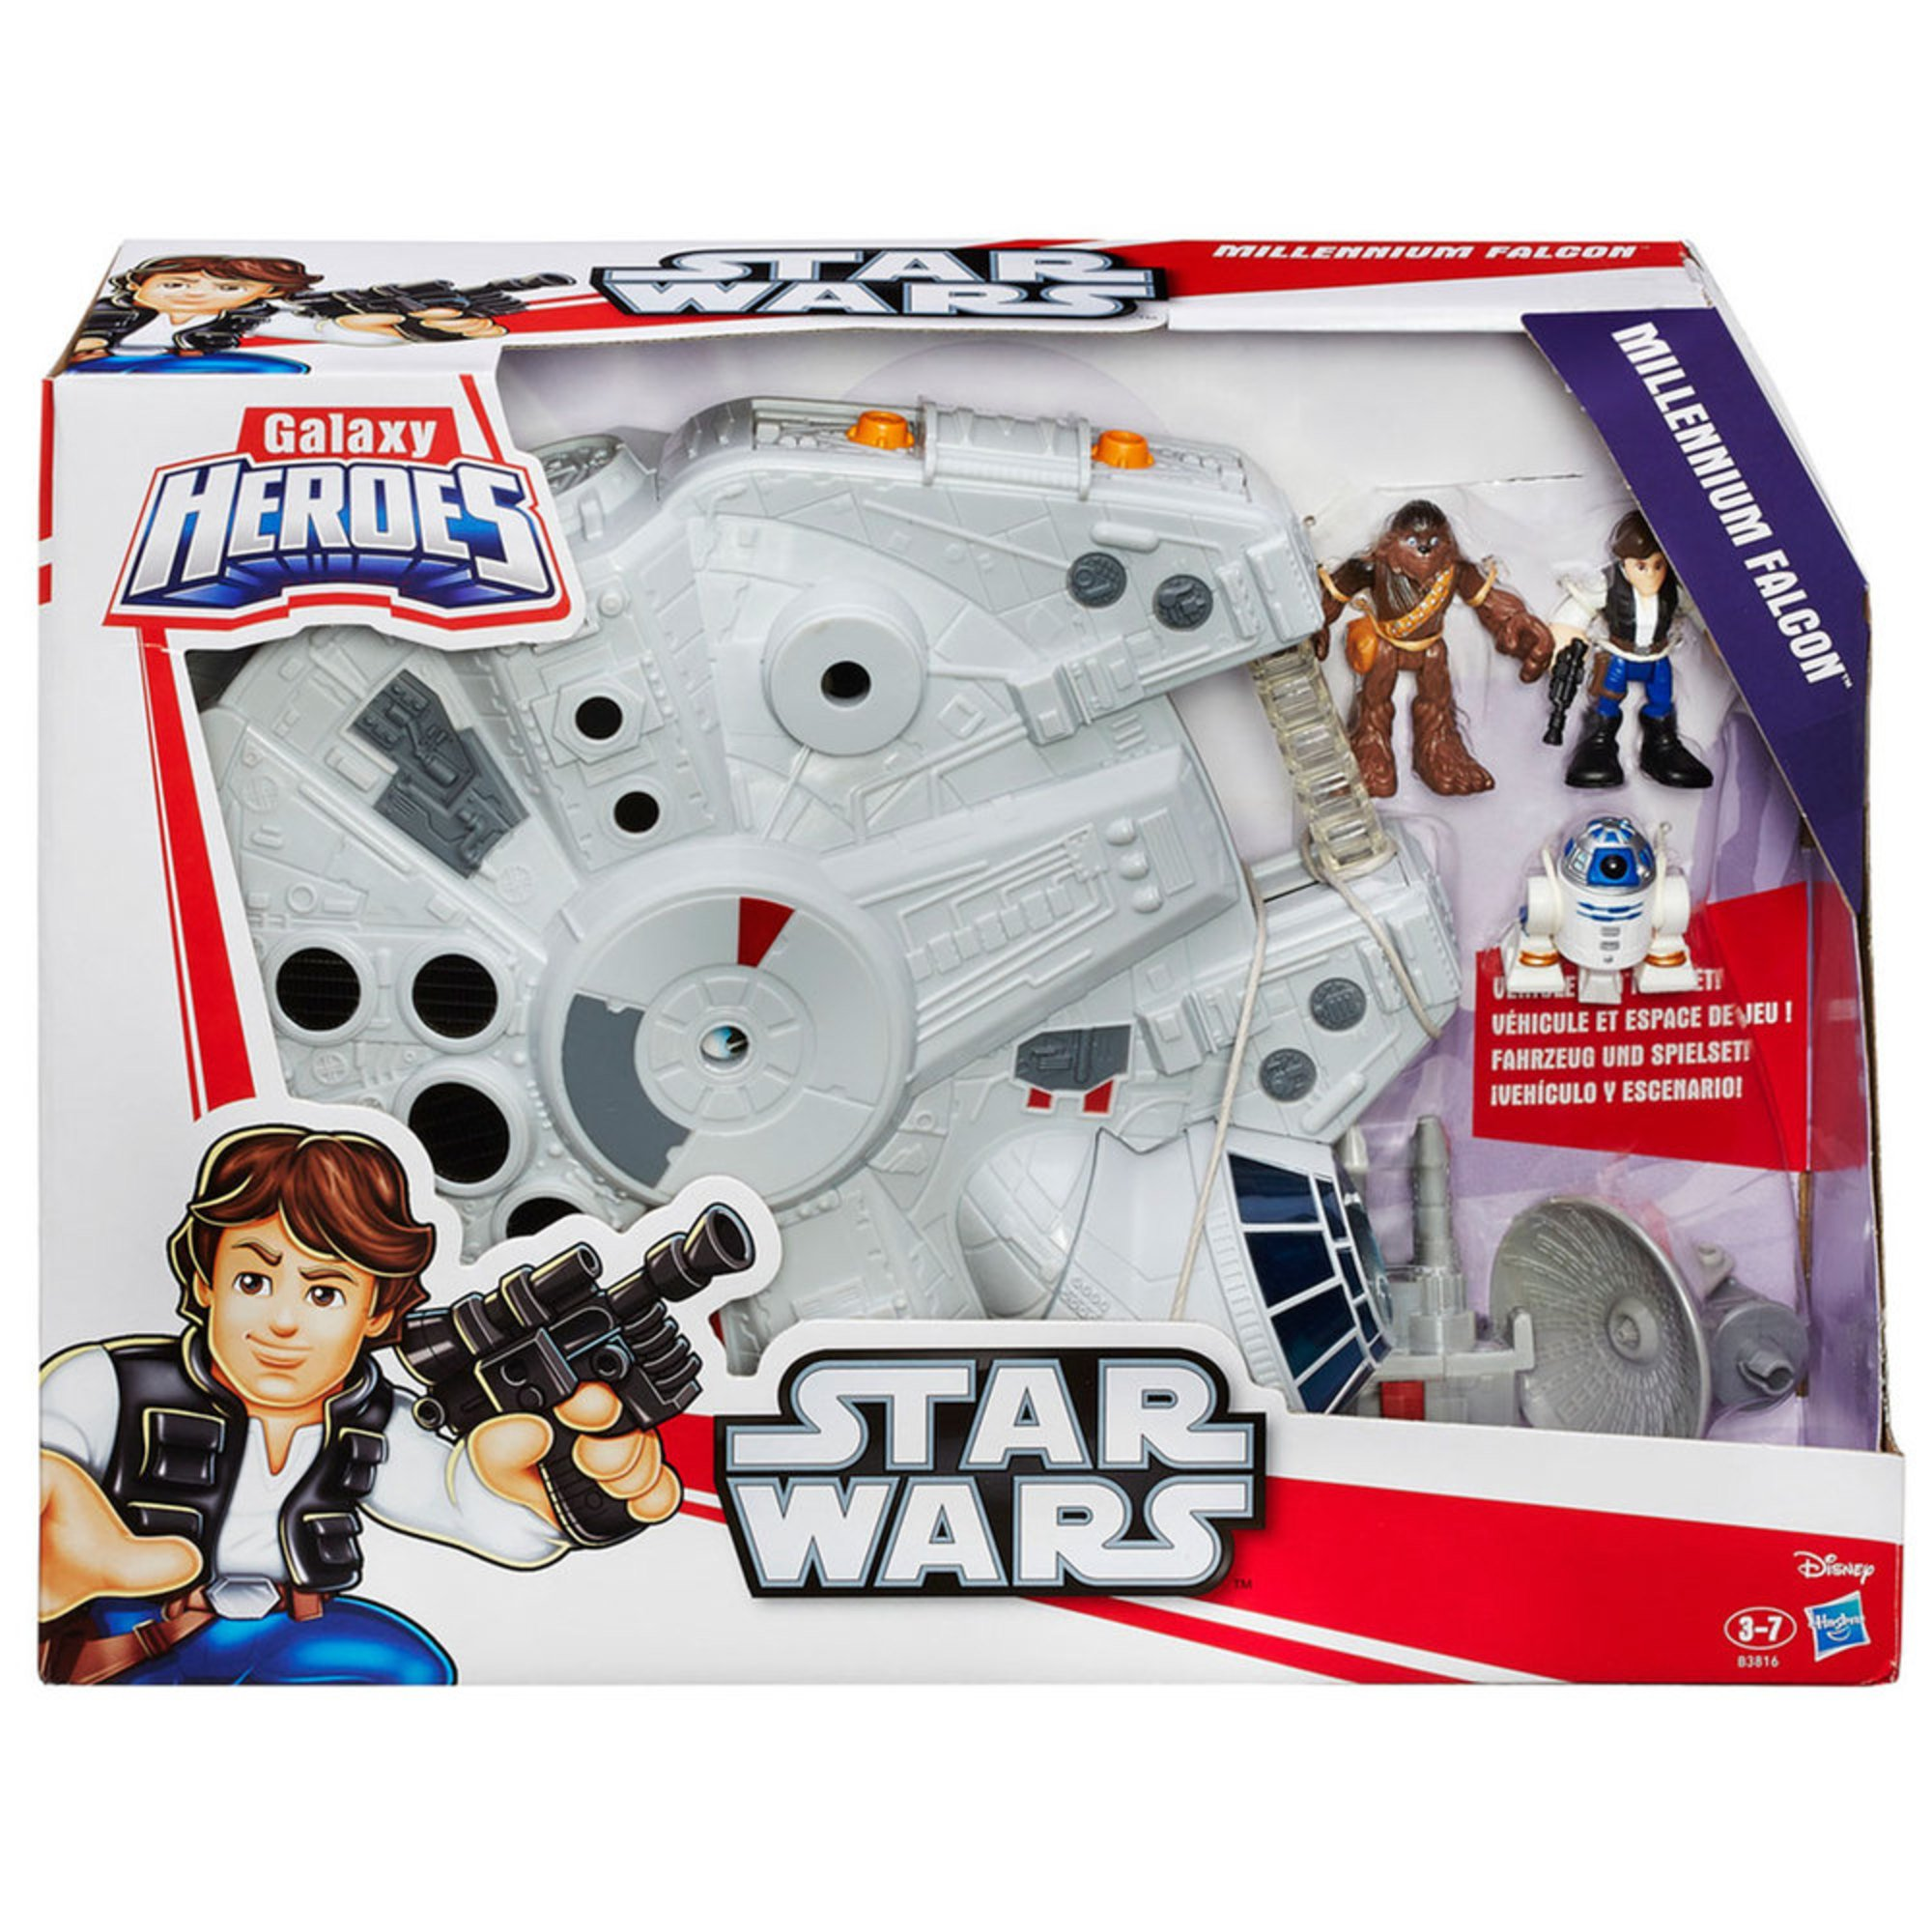 Star Wars Galactic Heroes Millenium Falcon Early Learning Toys Baby Kids Your Navy Exchange Official Site